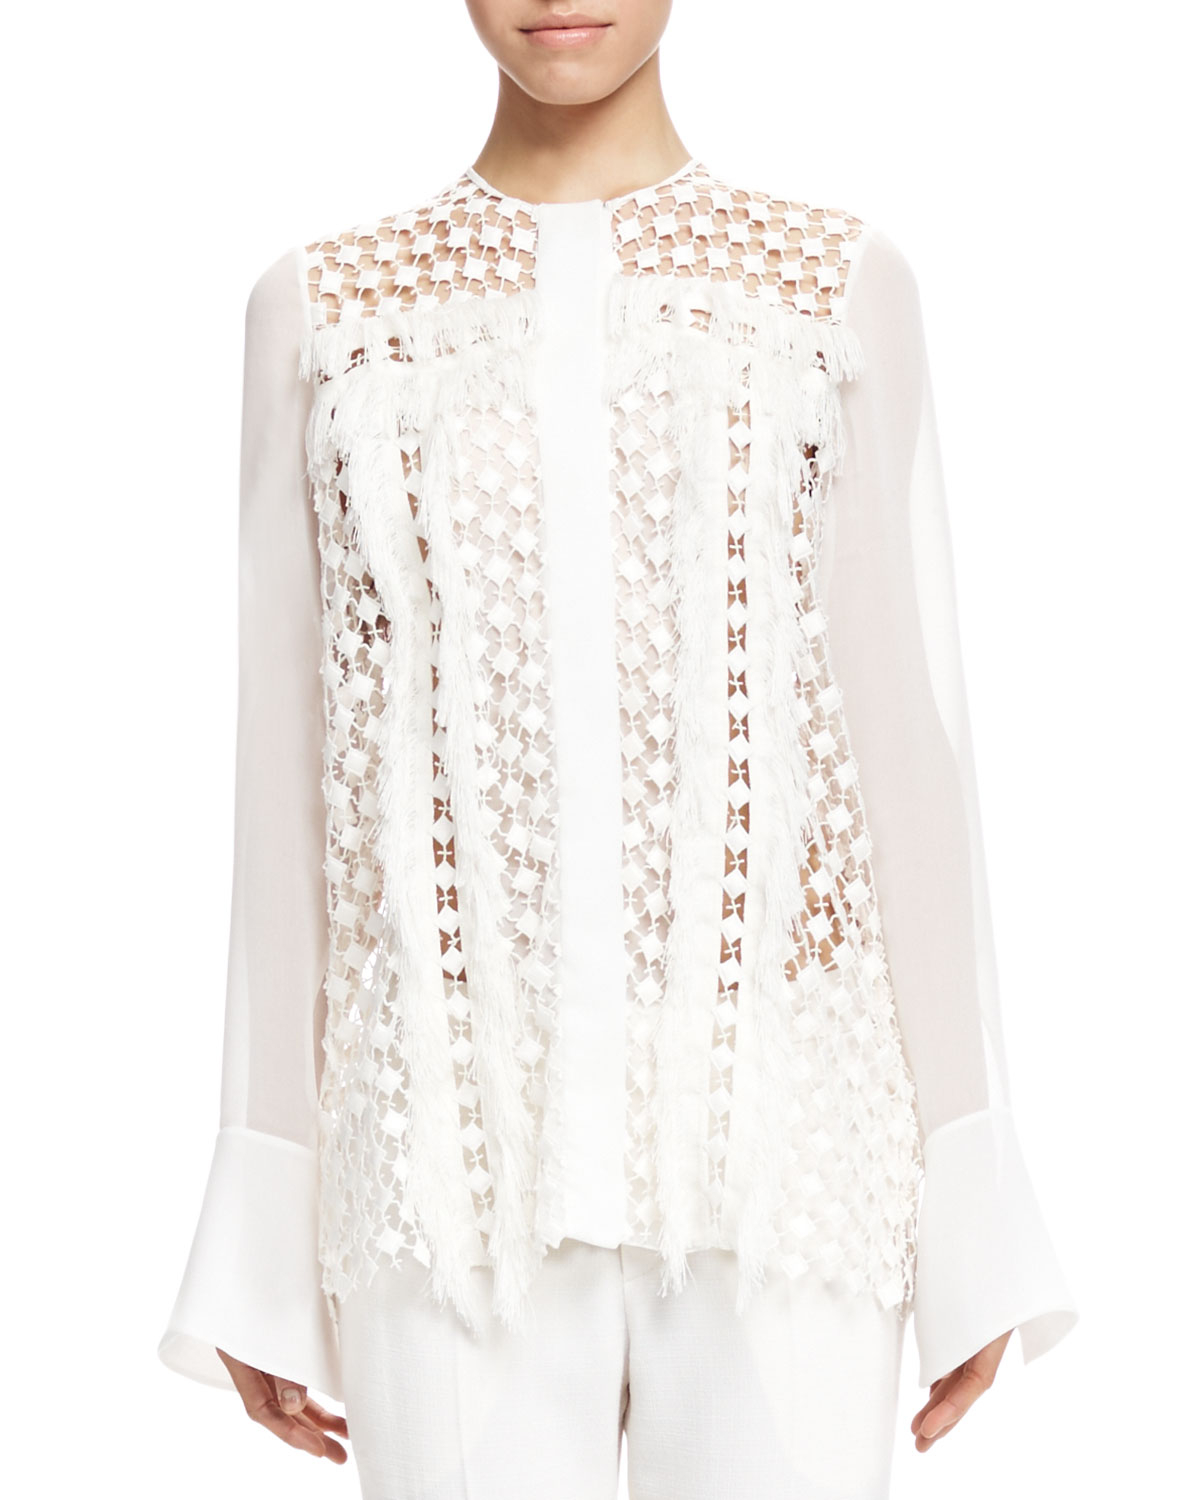 Chloé Fringe-trim Lace Blouse in White | Lyst